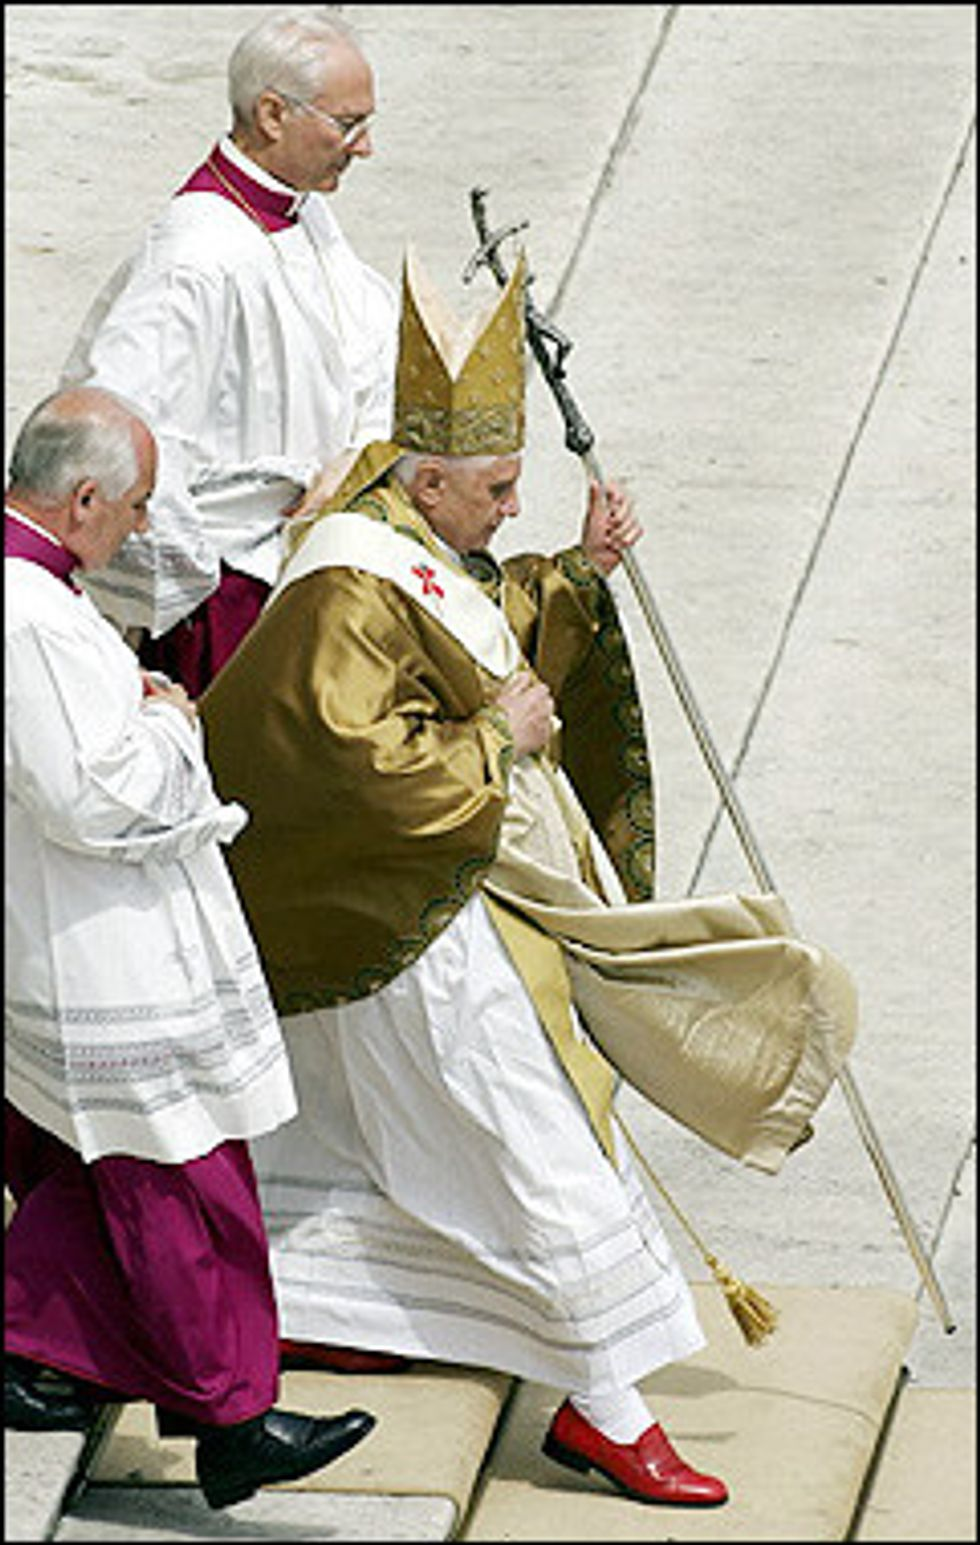 Is the Pope a Fashionista?